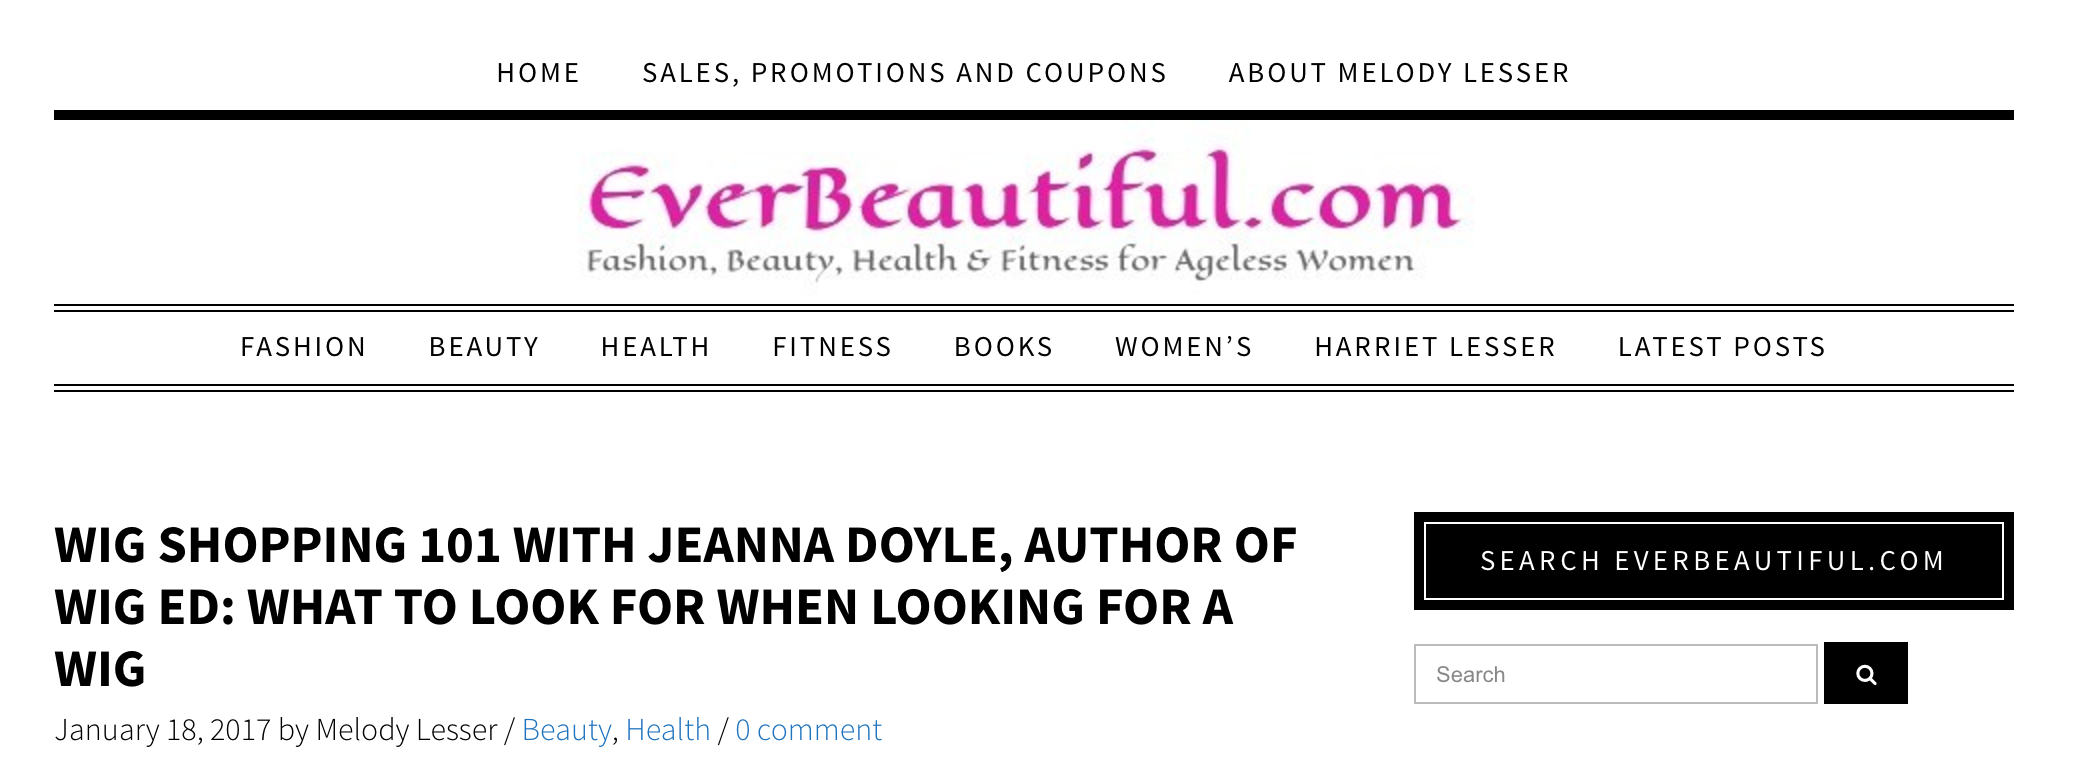 www.everbeautiful.com